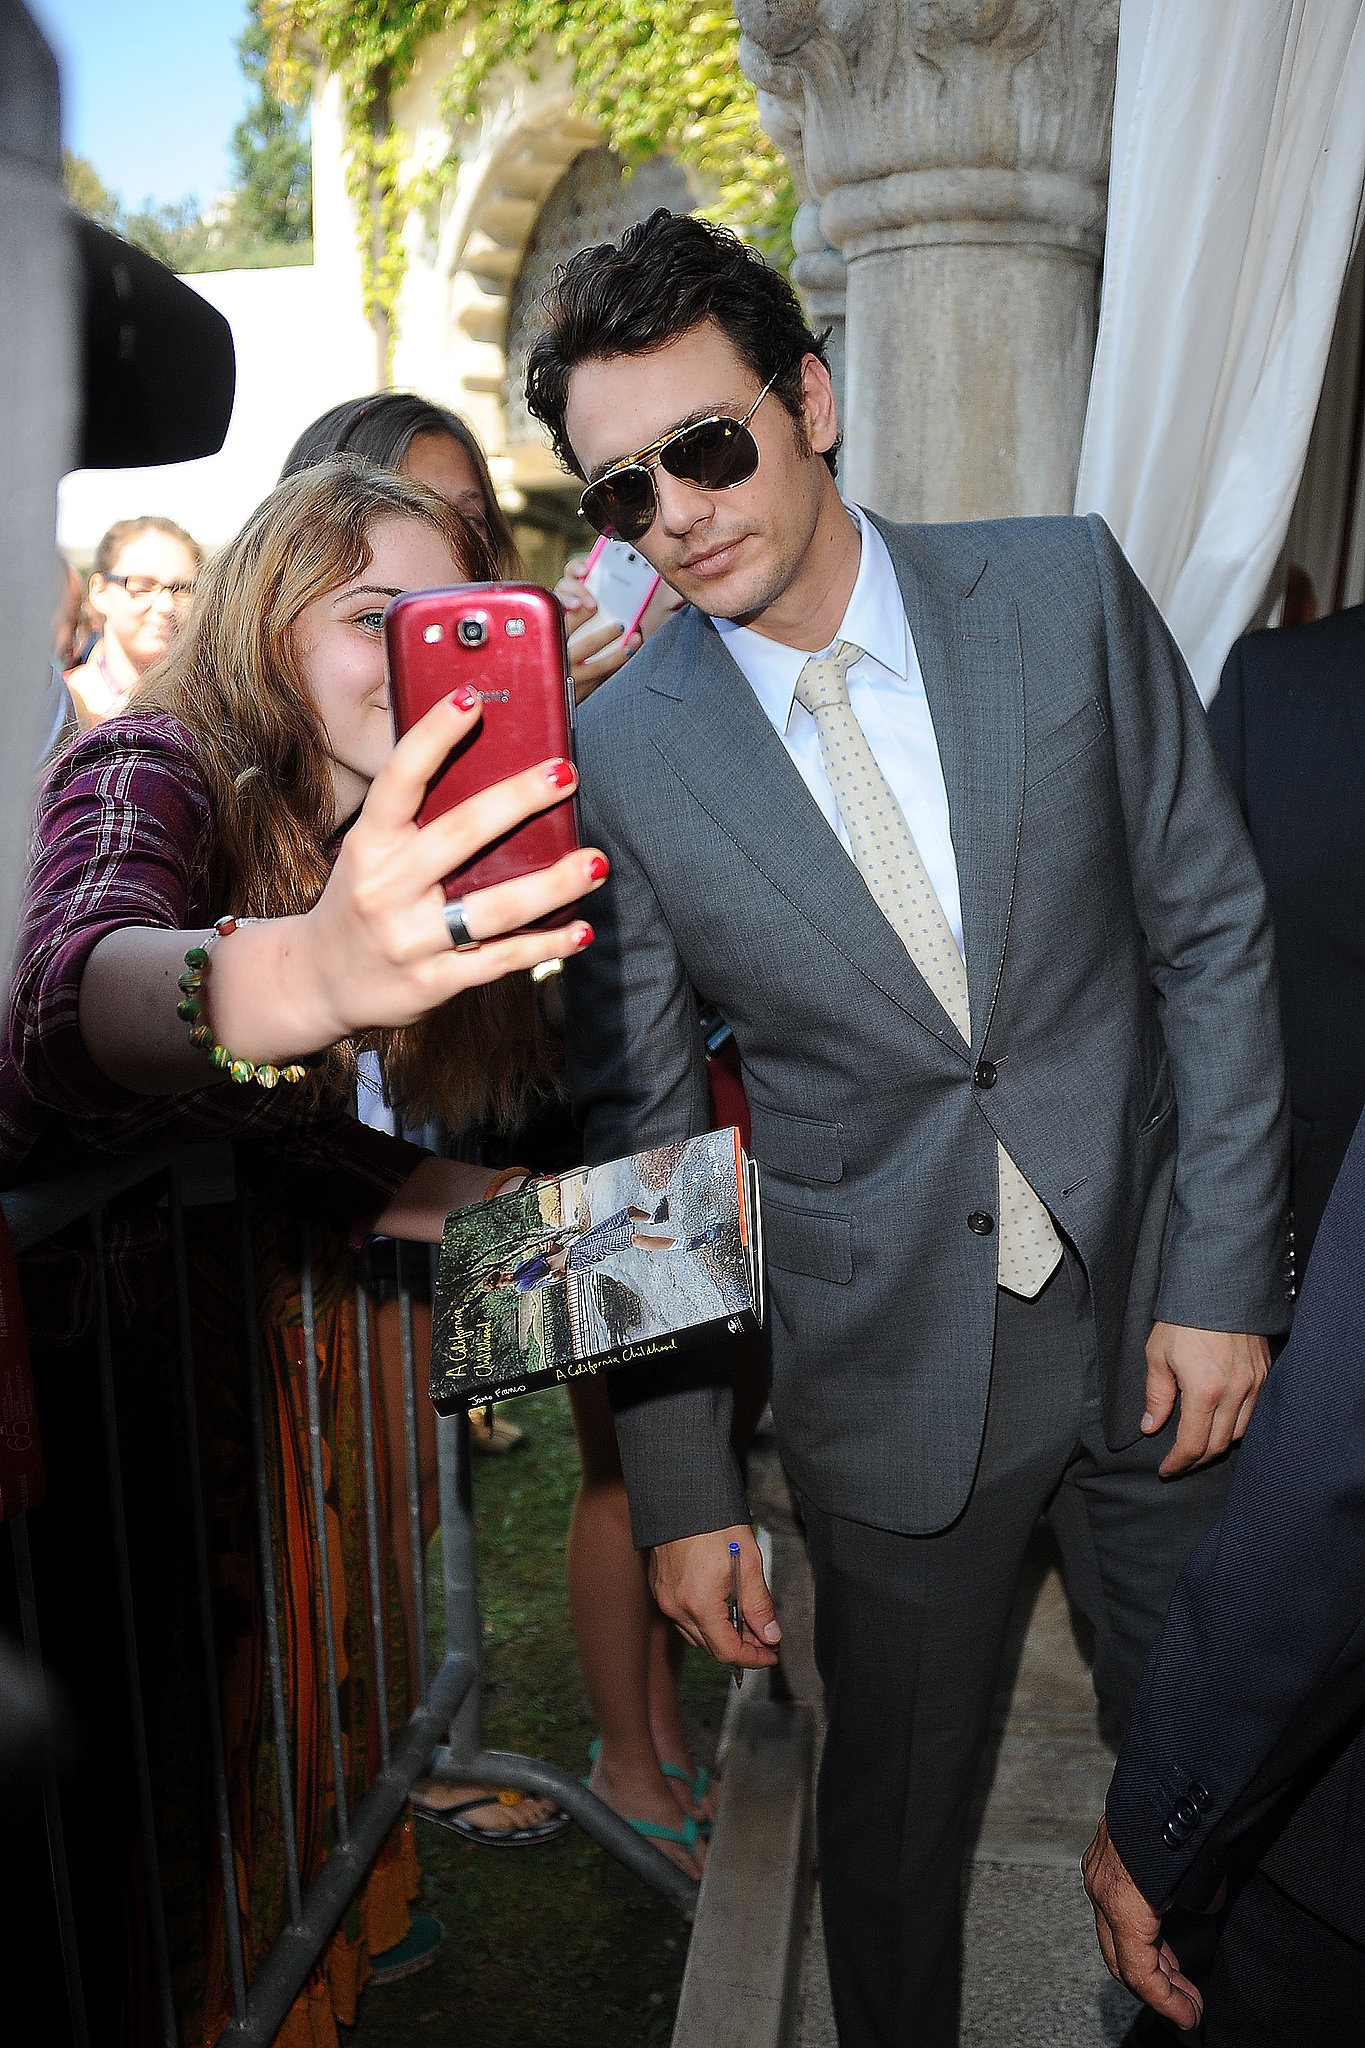 James Franco snapped a selfie with a fan at the Venice Film Festival.